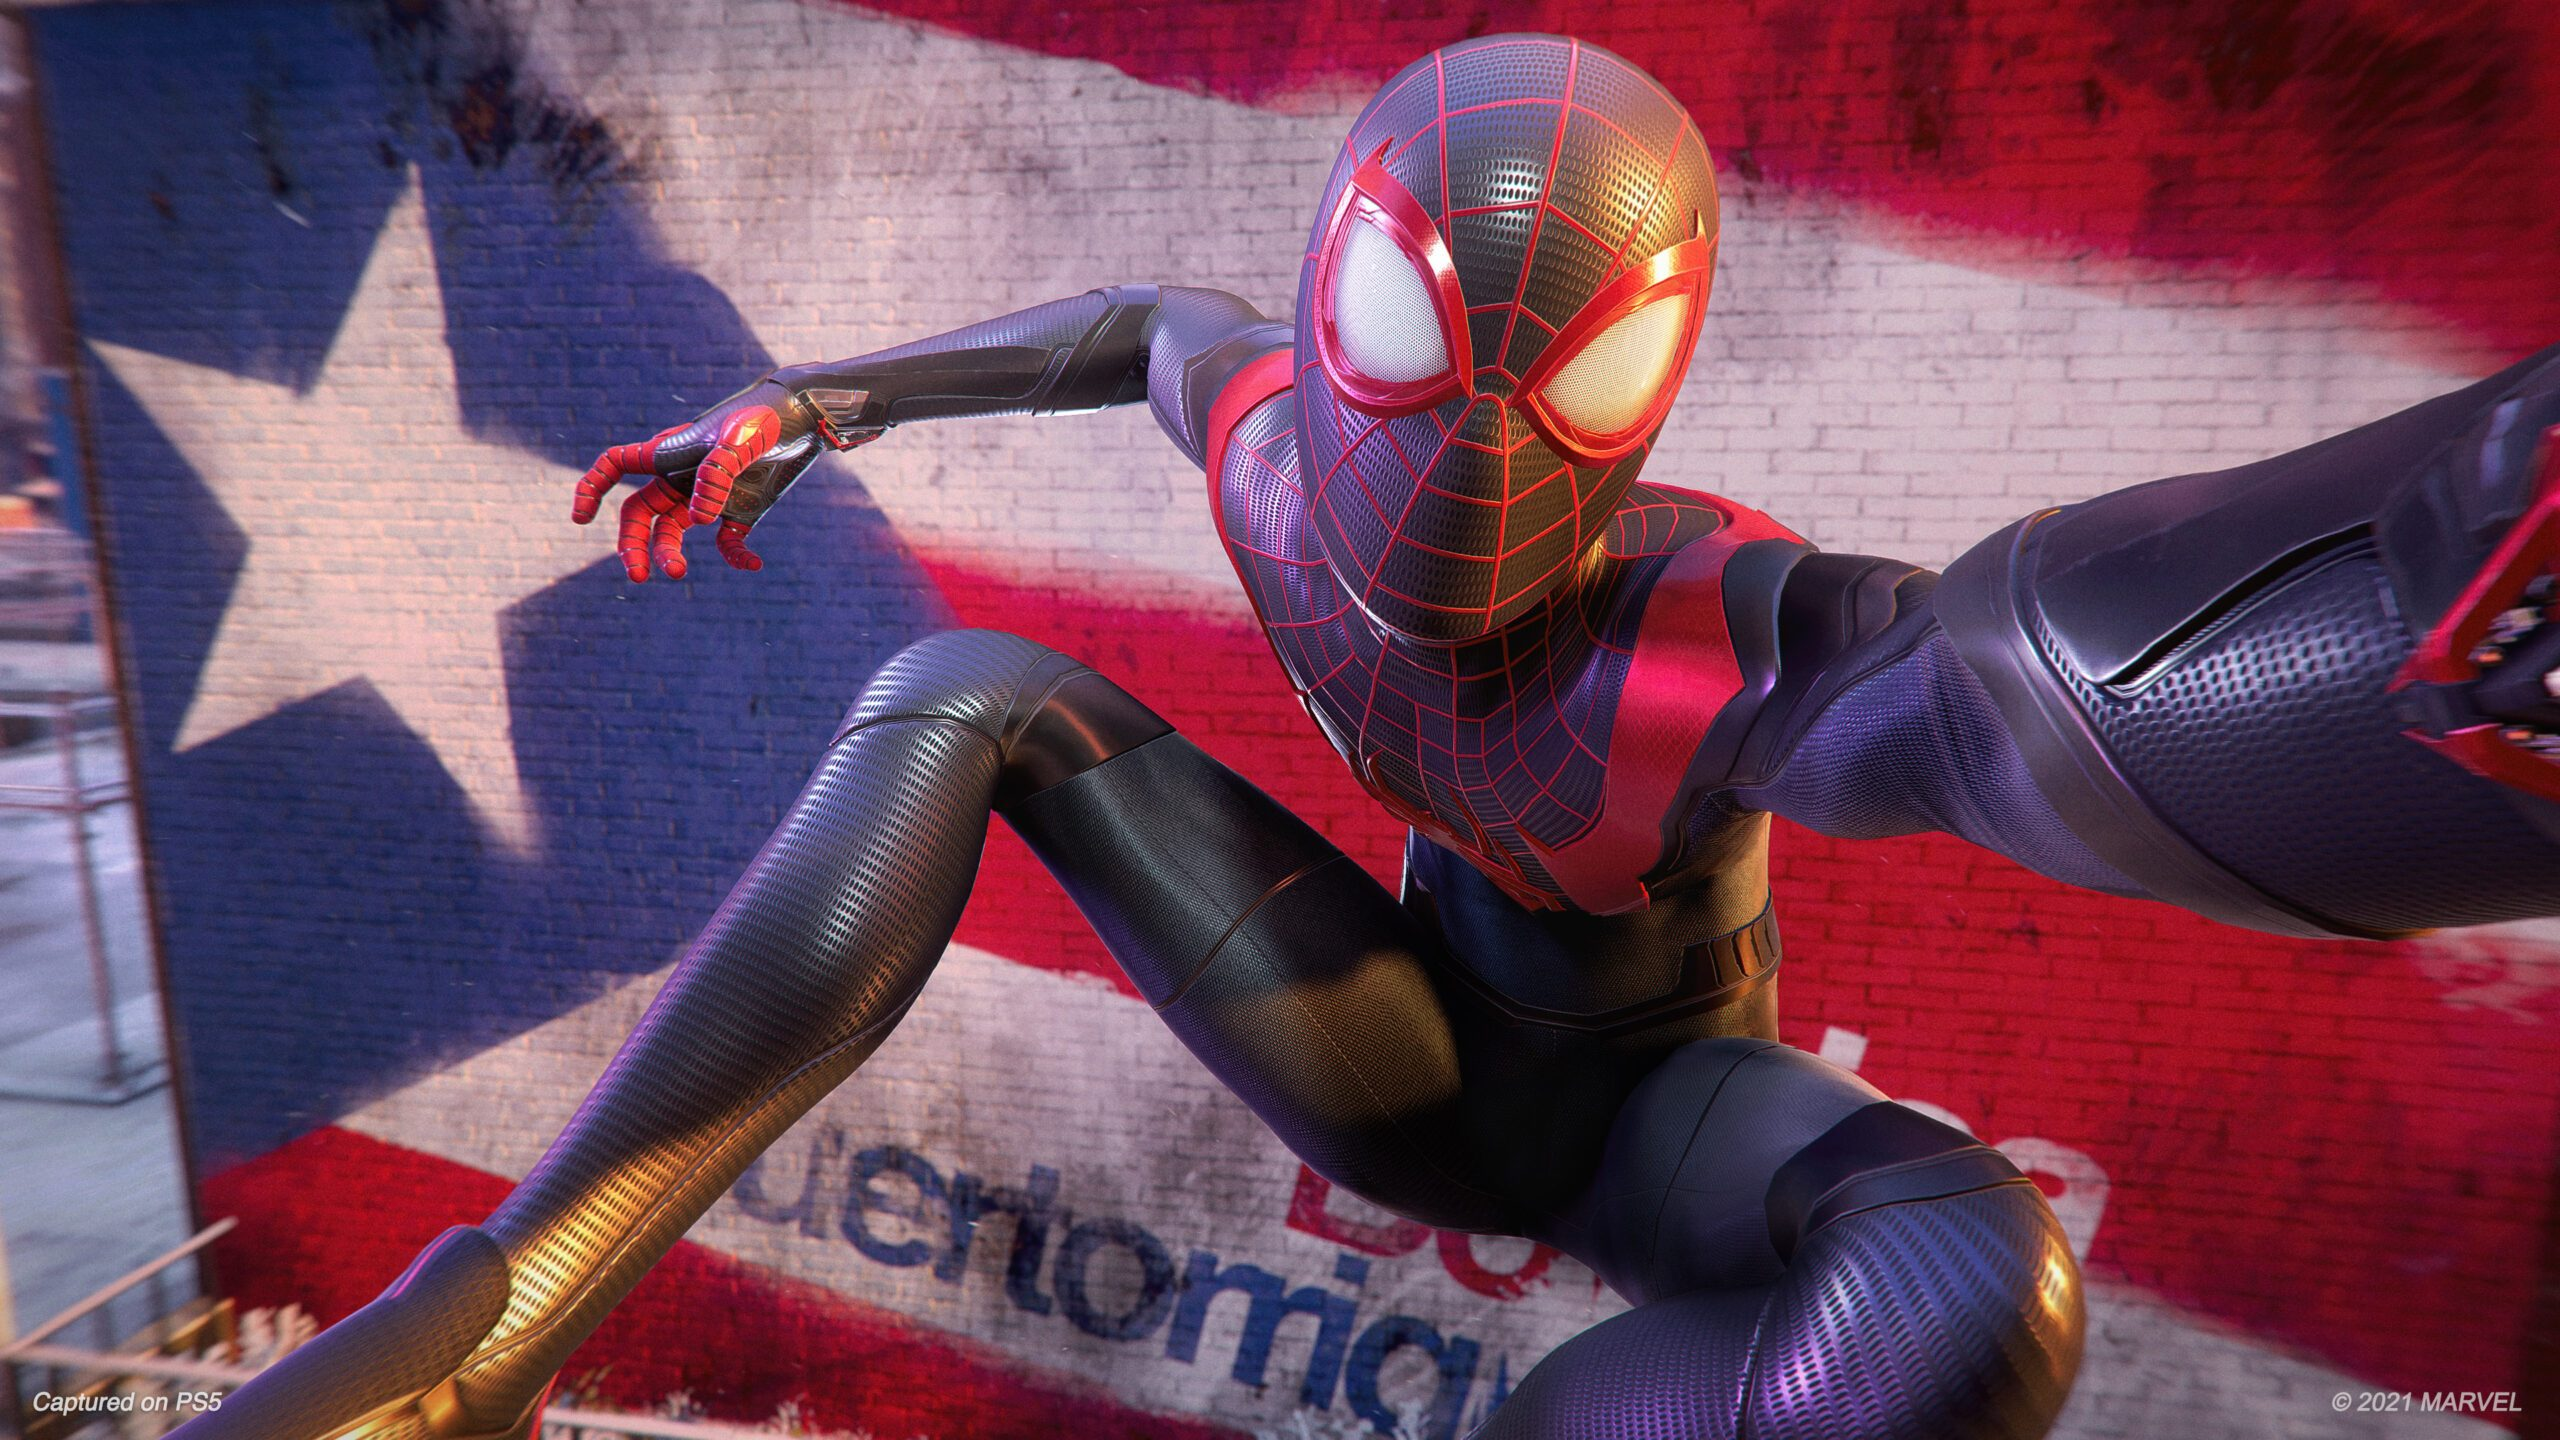 marvel's-spider-man:-miles-morales:-an-homage-to-hispanic-heritage-and-representation